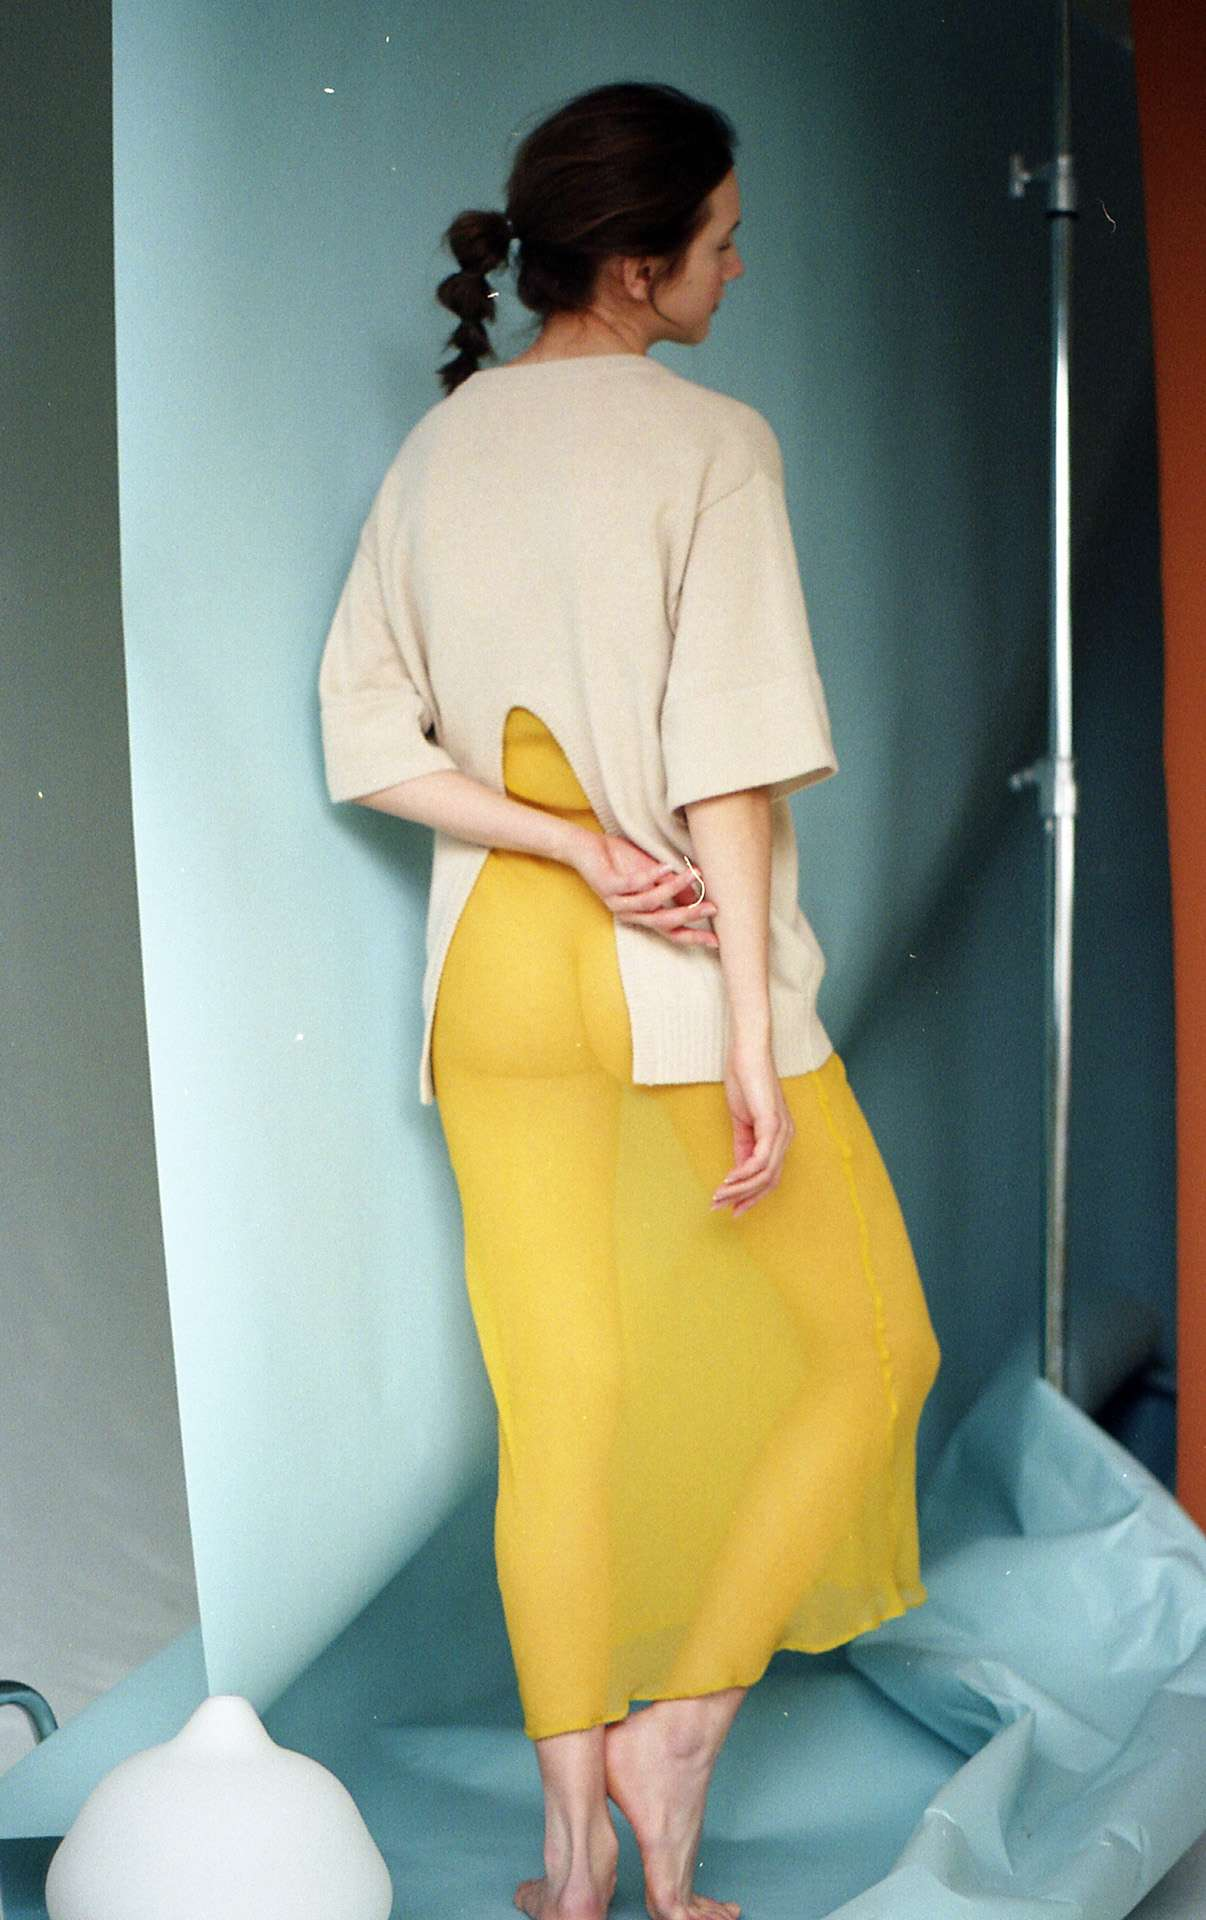 female model wearing see-through yellow dressed exposing her butt and beige cardigan on background made of crumpled paper photographed by Naomie from Studio TB